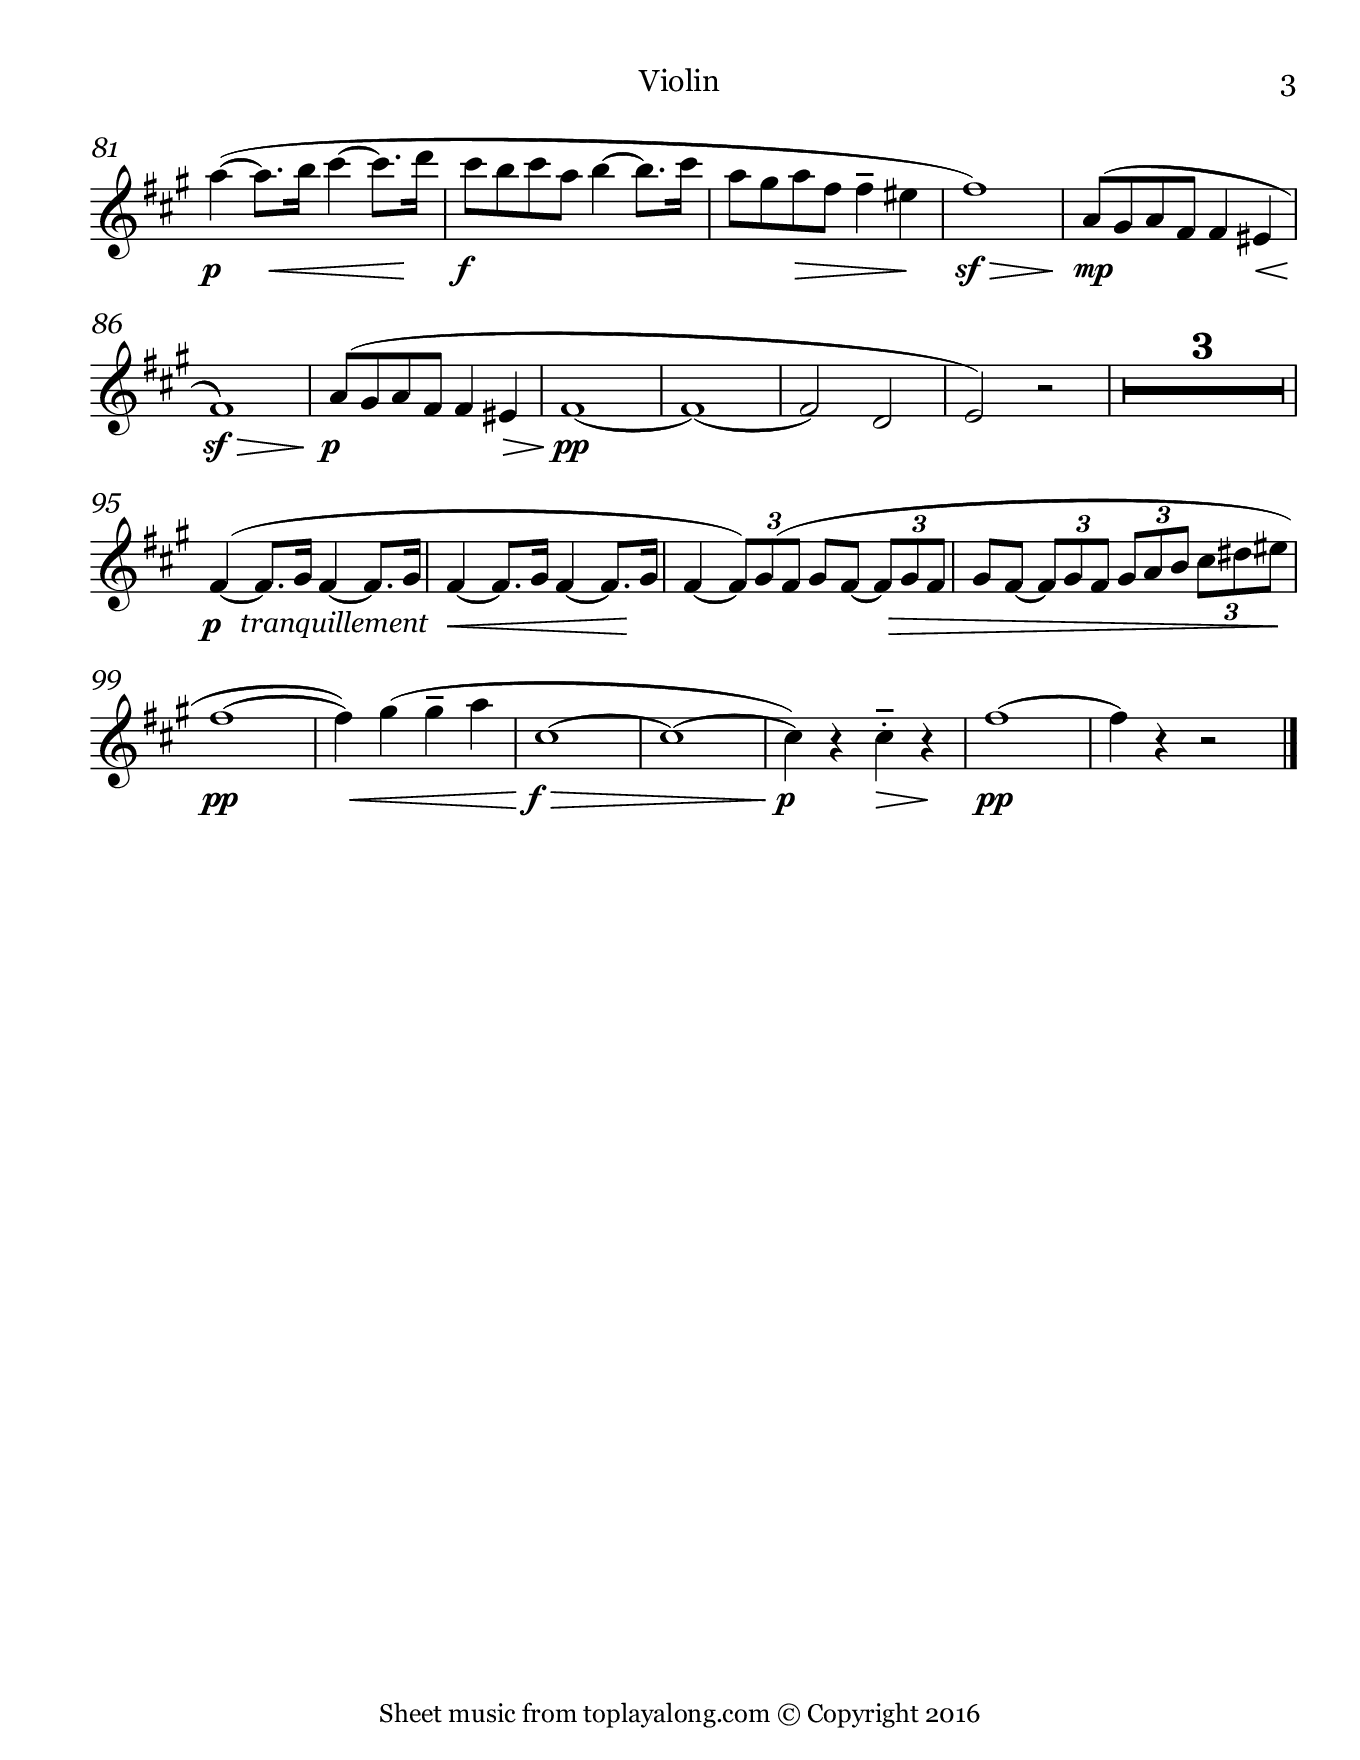 Pavane by Fauré. Sheet music for Violin, page 3.